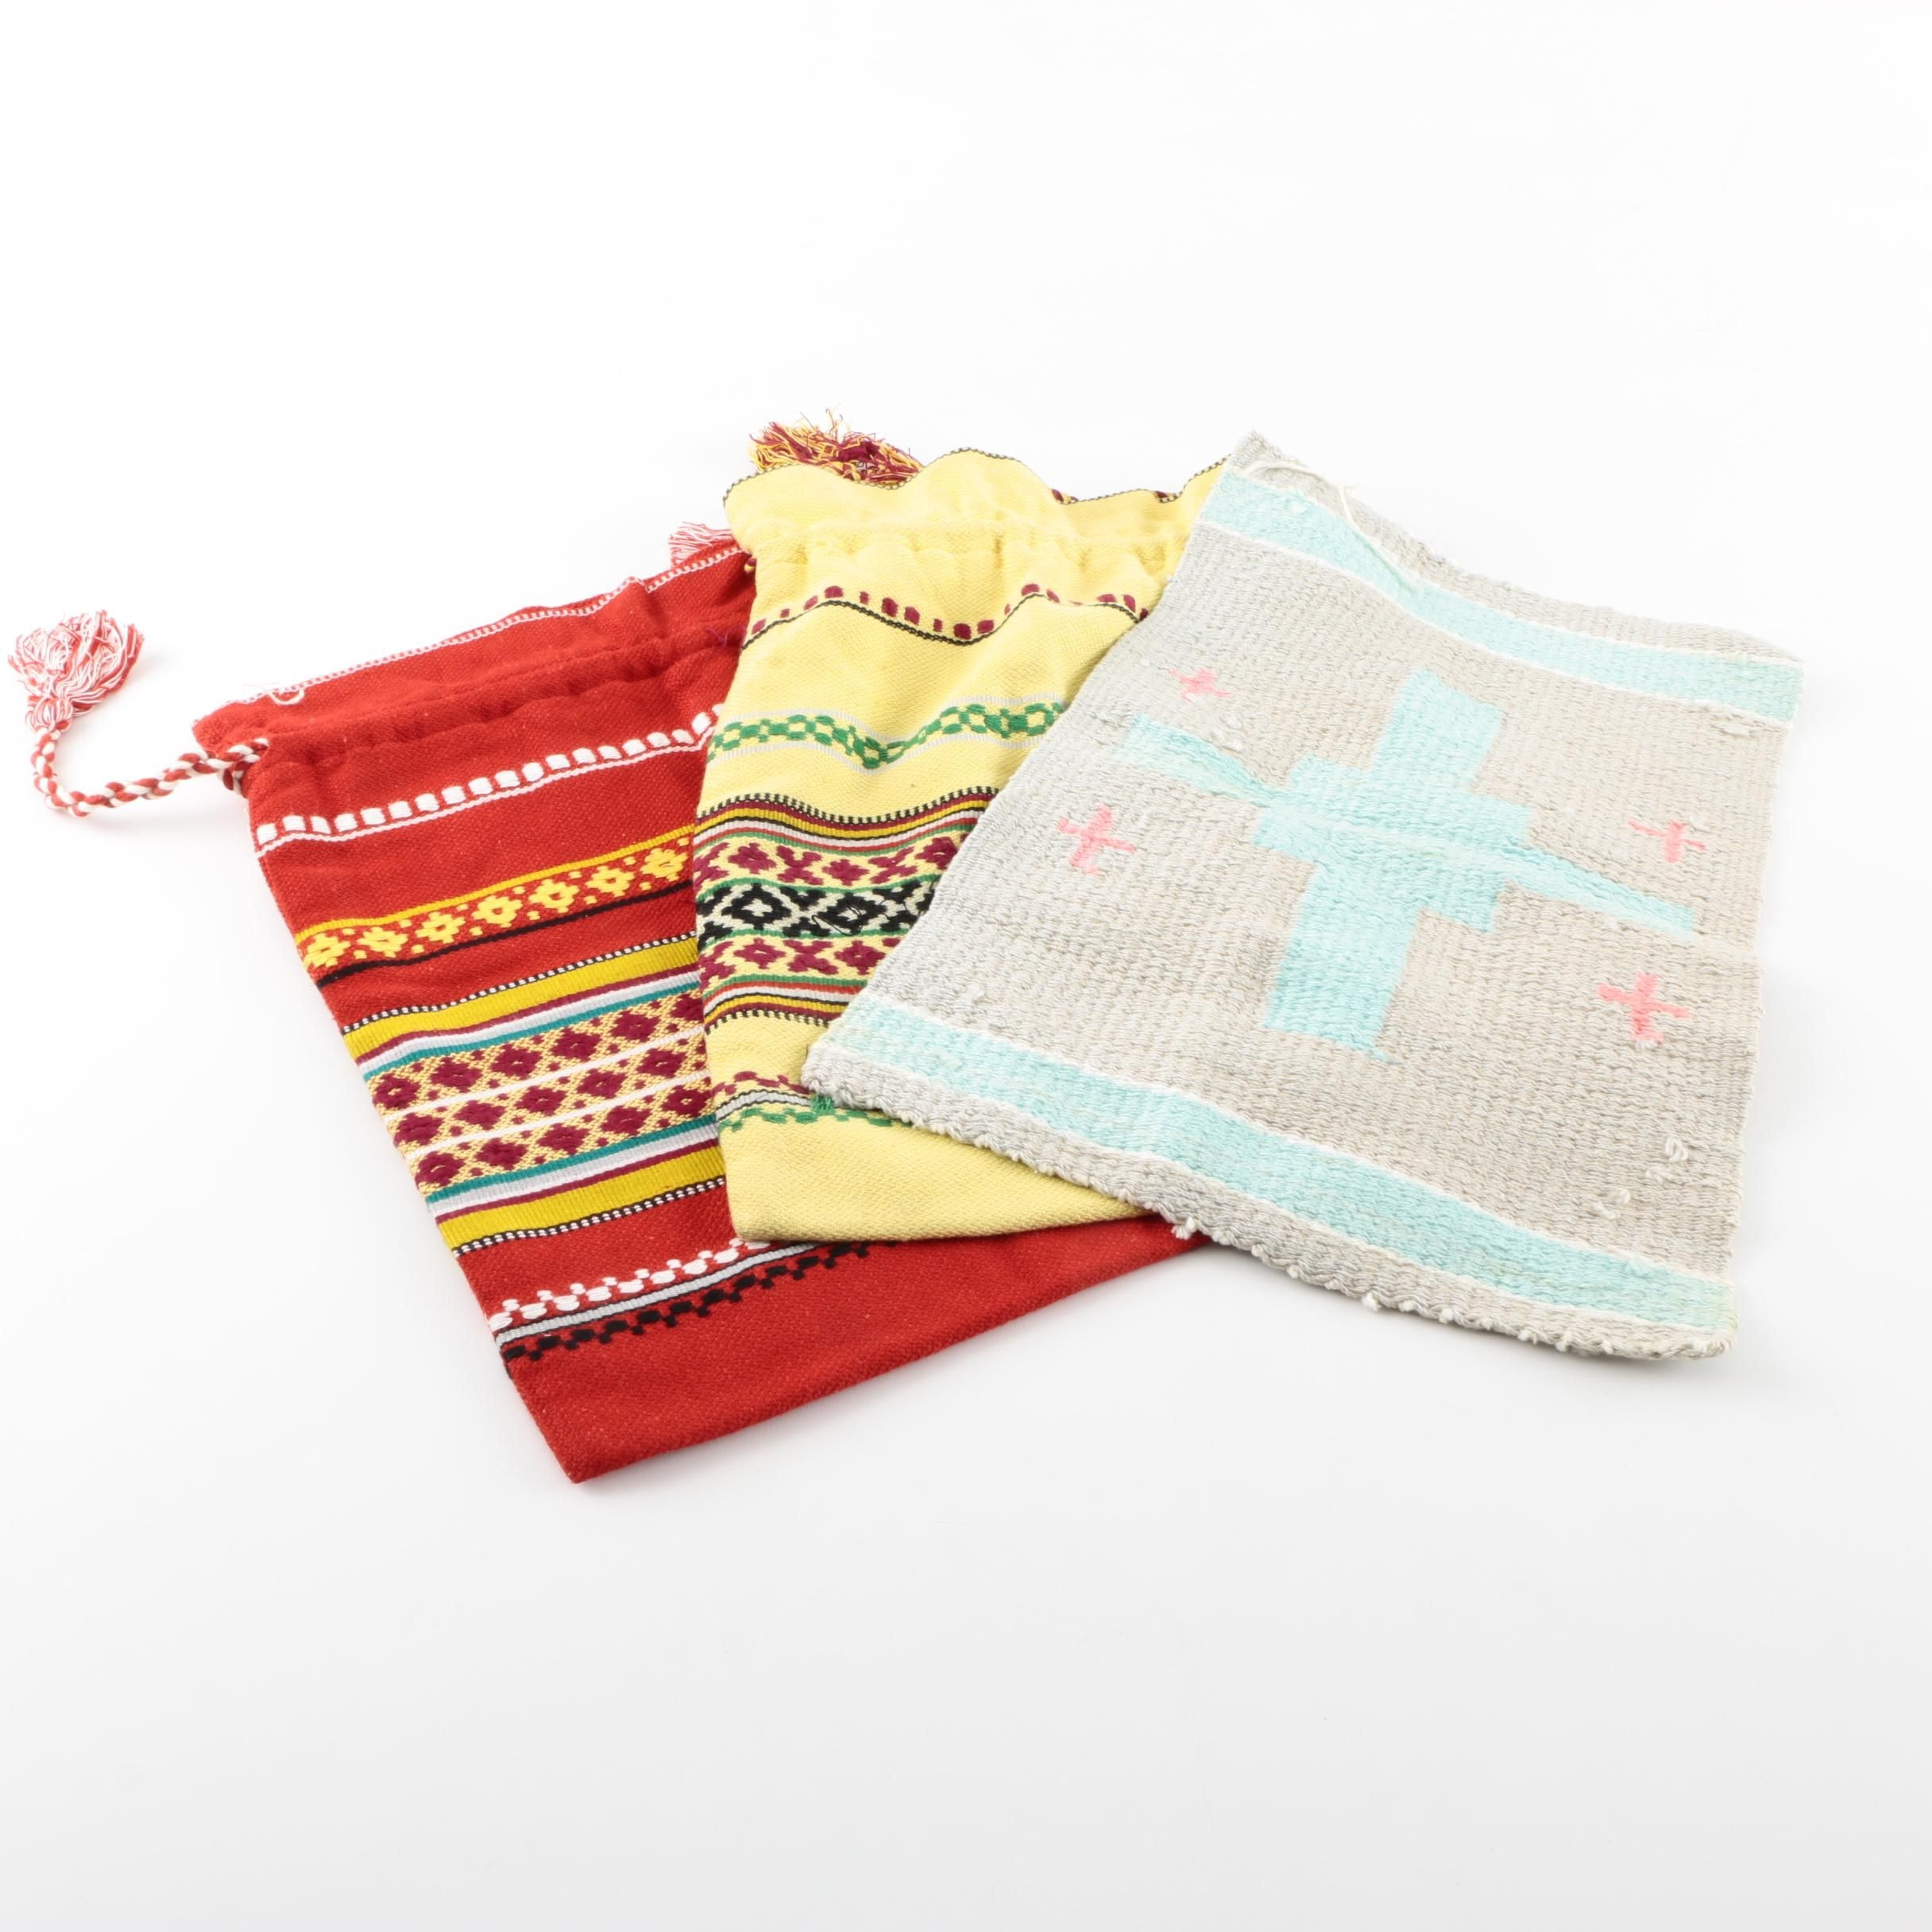 Two Southwestern Themed Bags and Table Mat